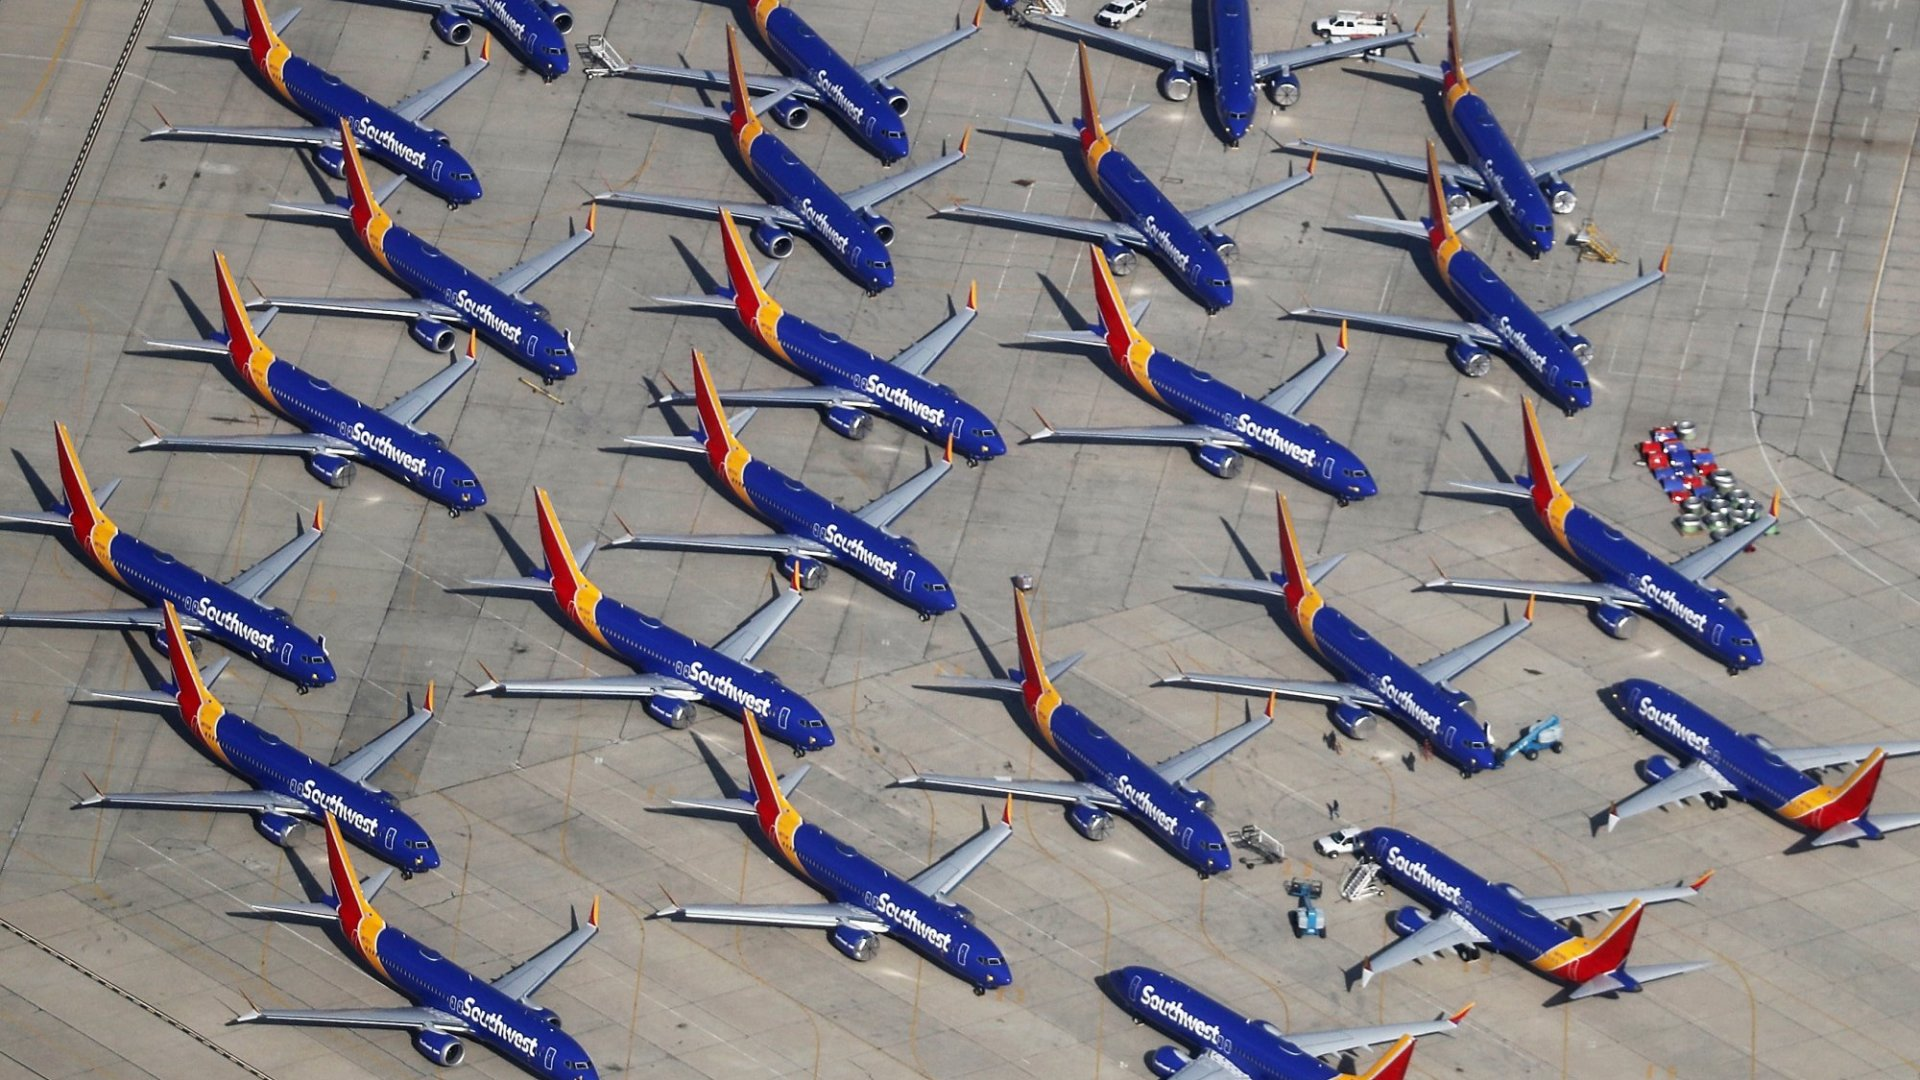 Southwest Airlines Just Made a Surprising Announcement About the Boeing 737 Max That Will Disappoint a Lot of People